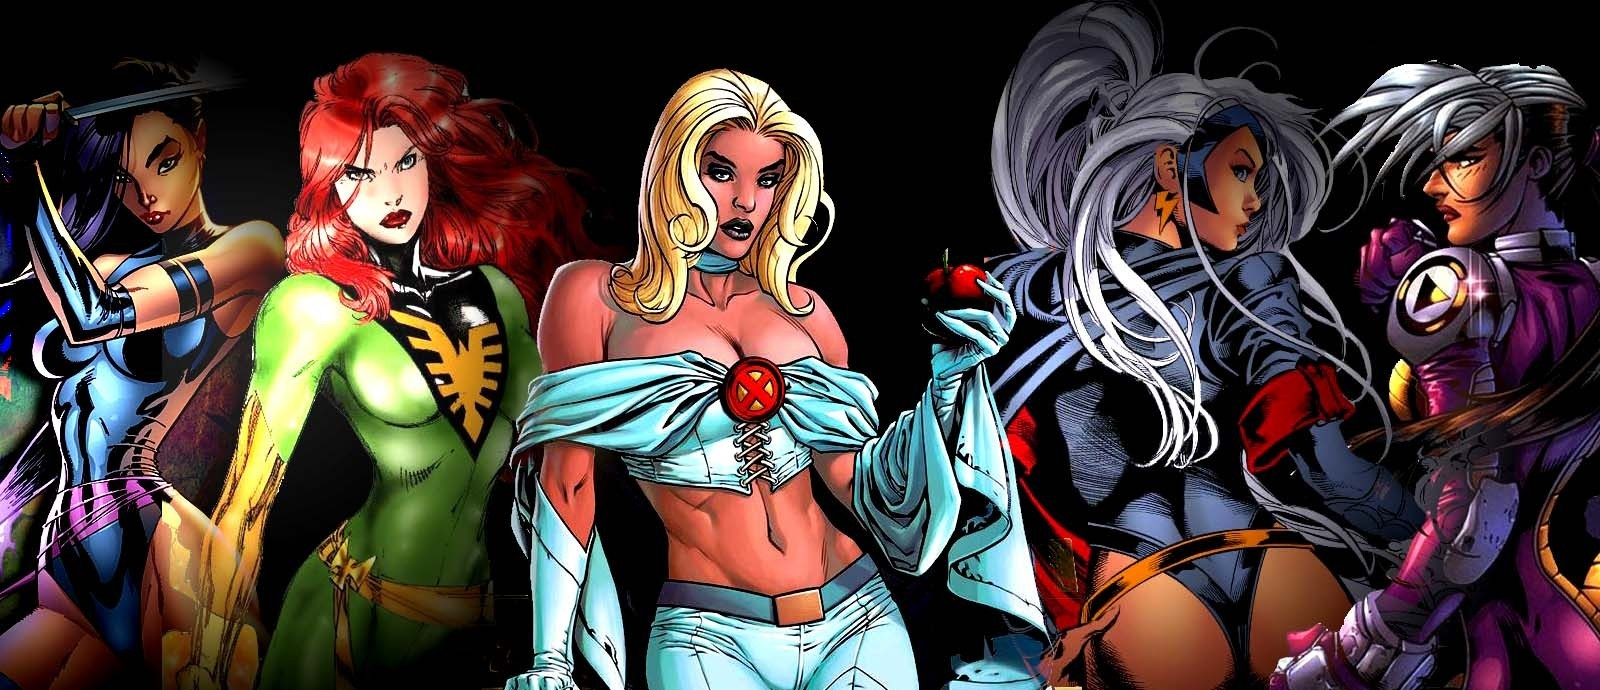 Mutant Women of Earth: How Chris Claremont Reinvented the Female ...